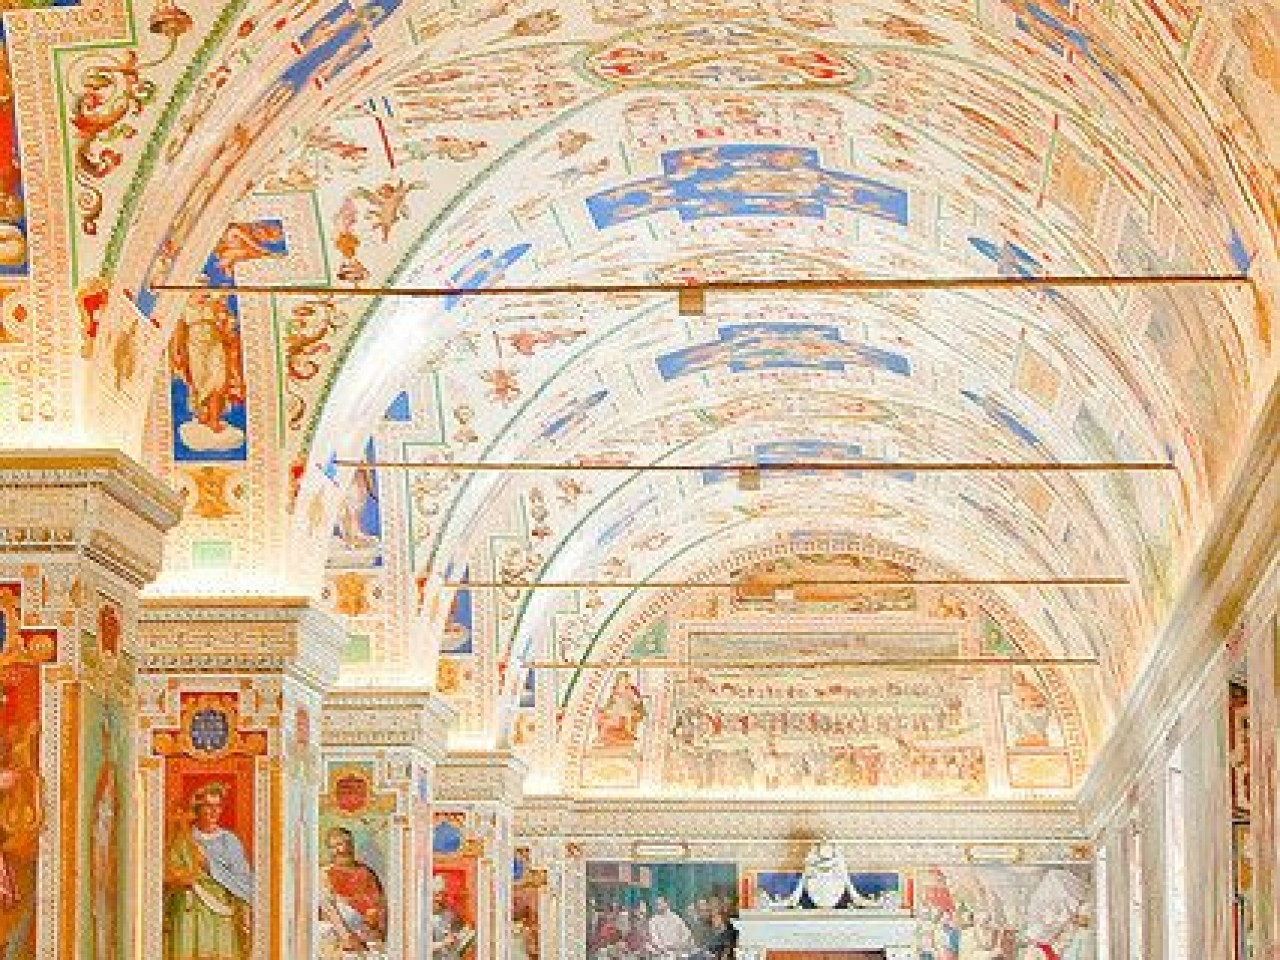 Museum Tickets in Italy